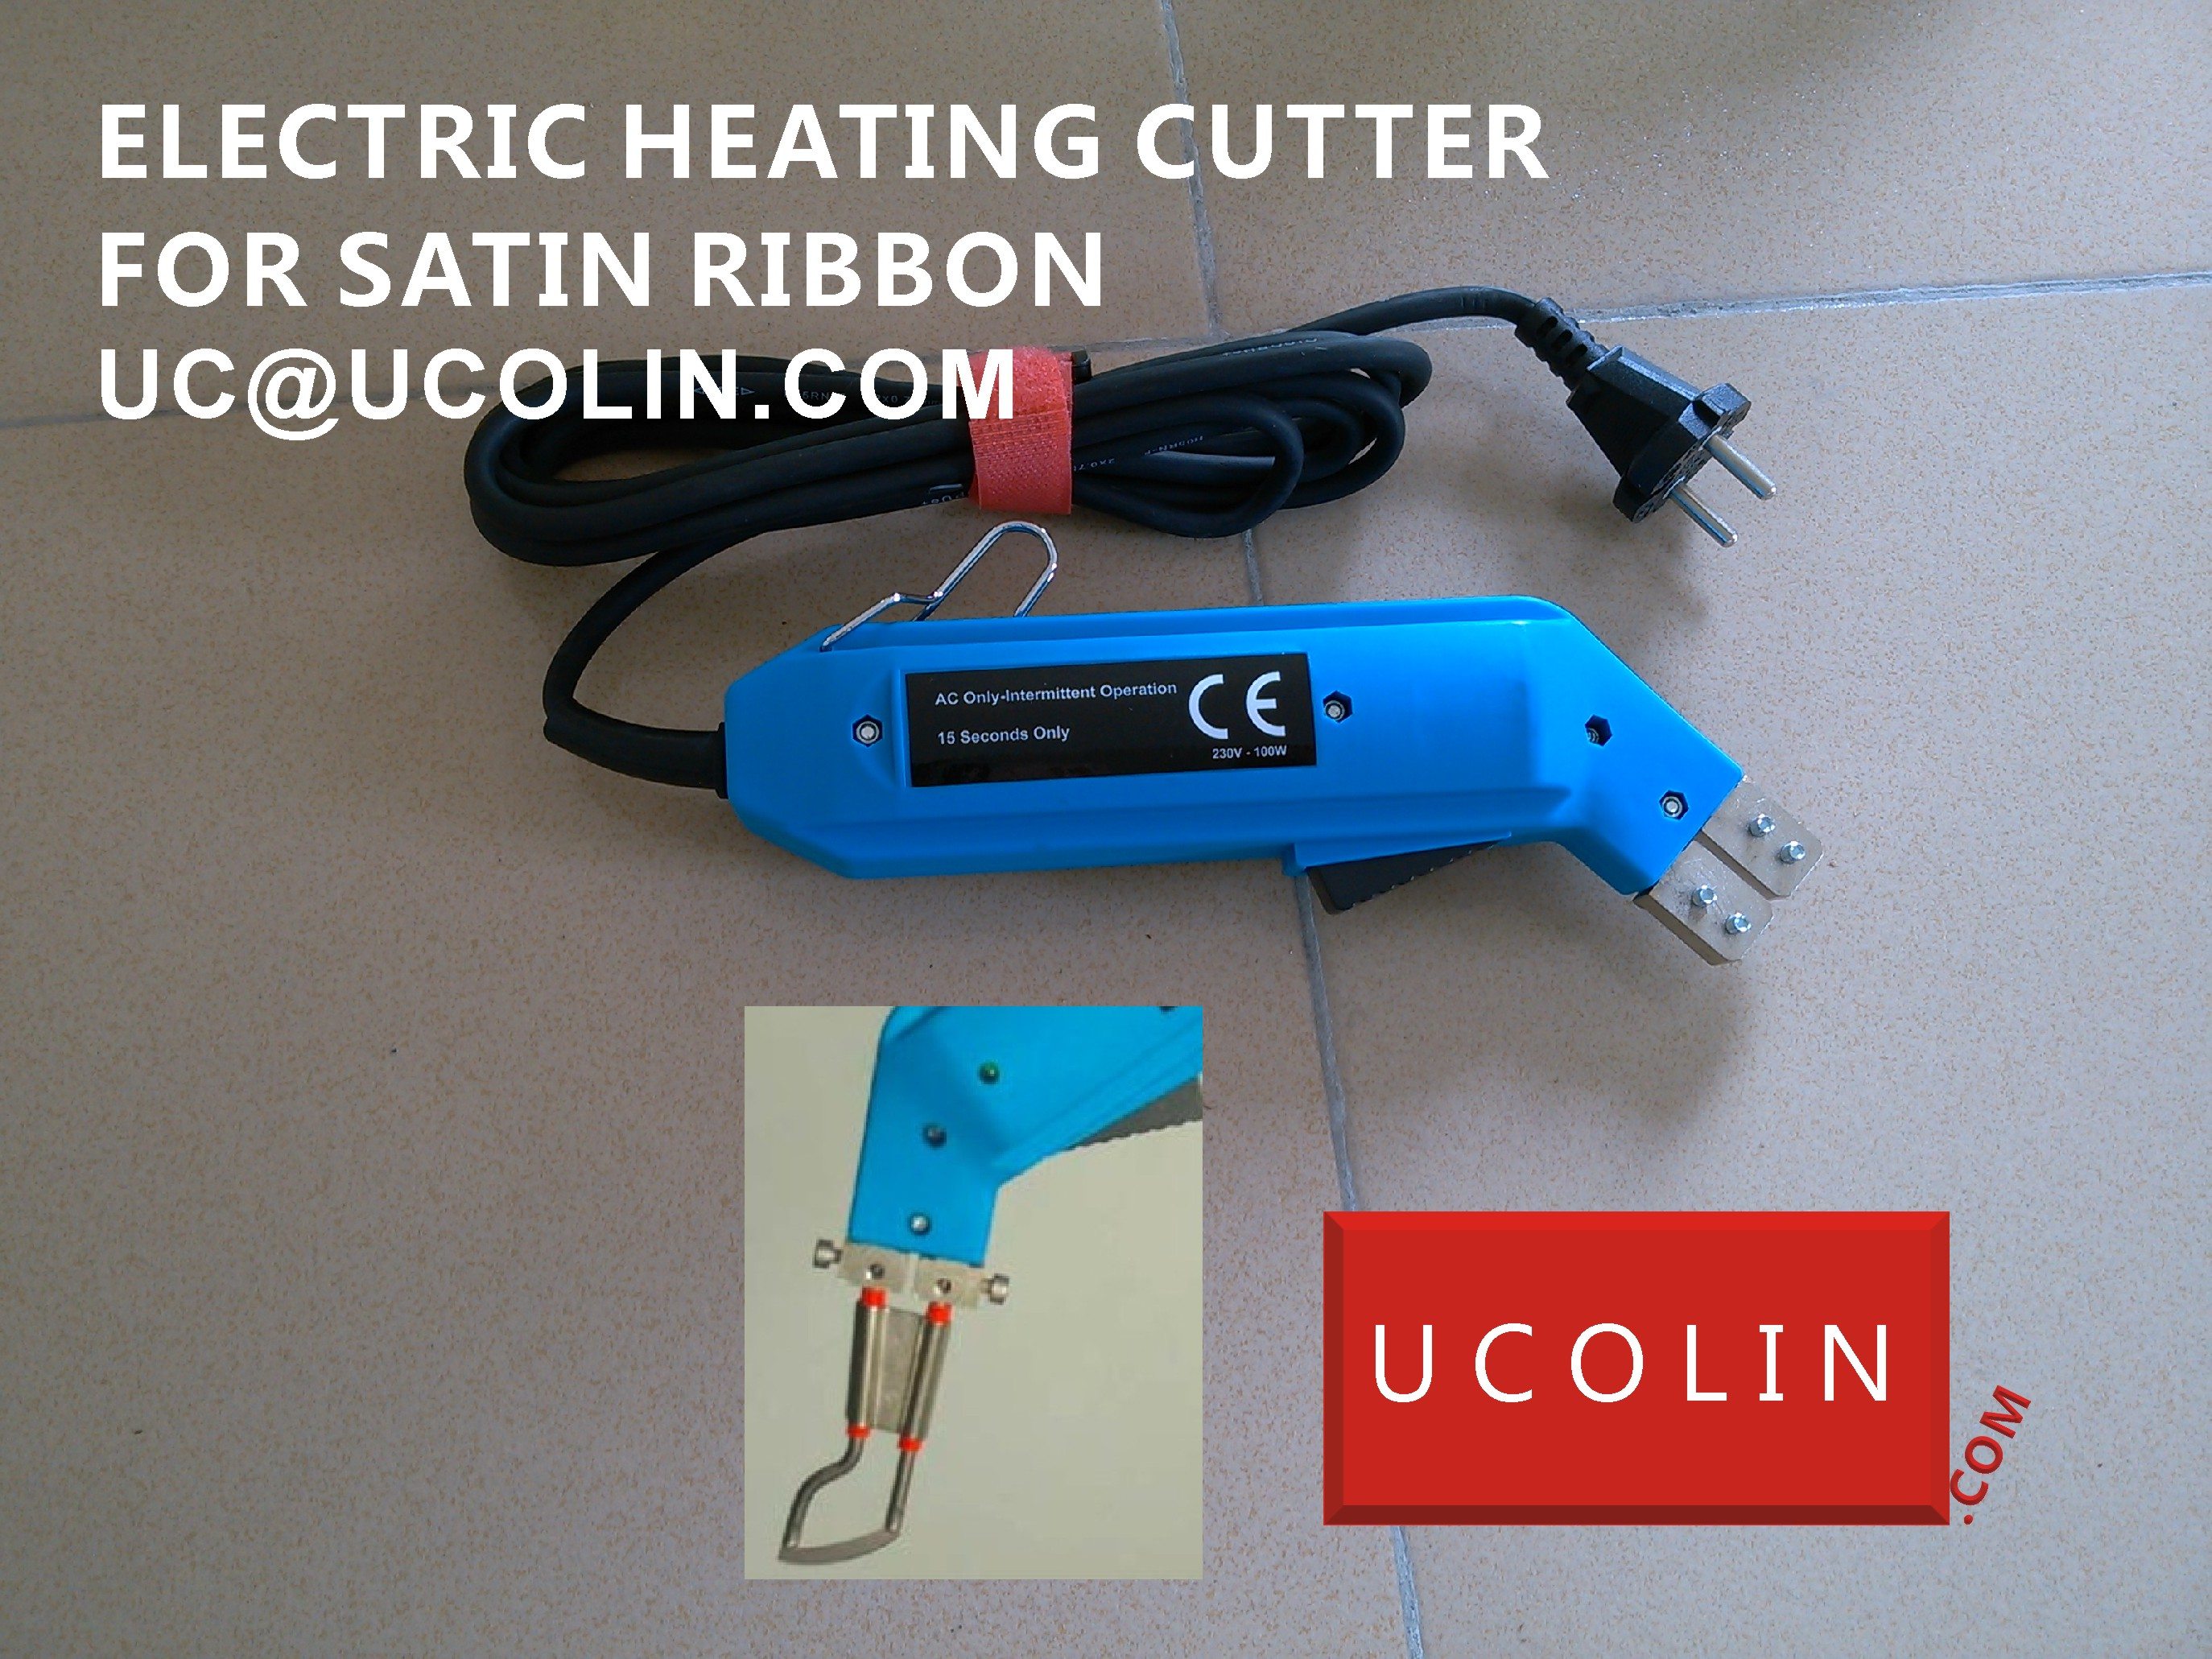 ELECTRIC HEATING CUTTER FOR SATINE RIBBON